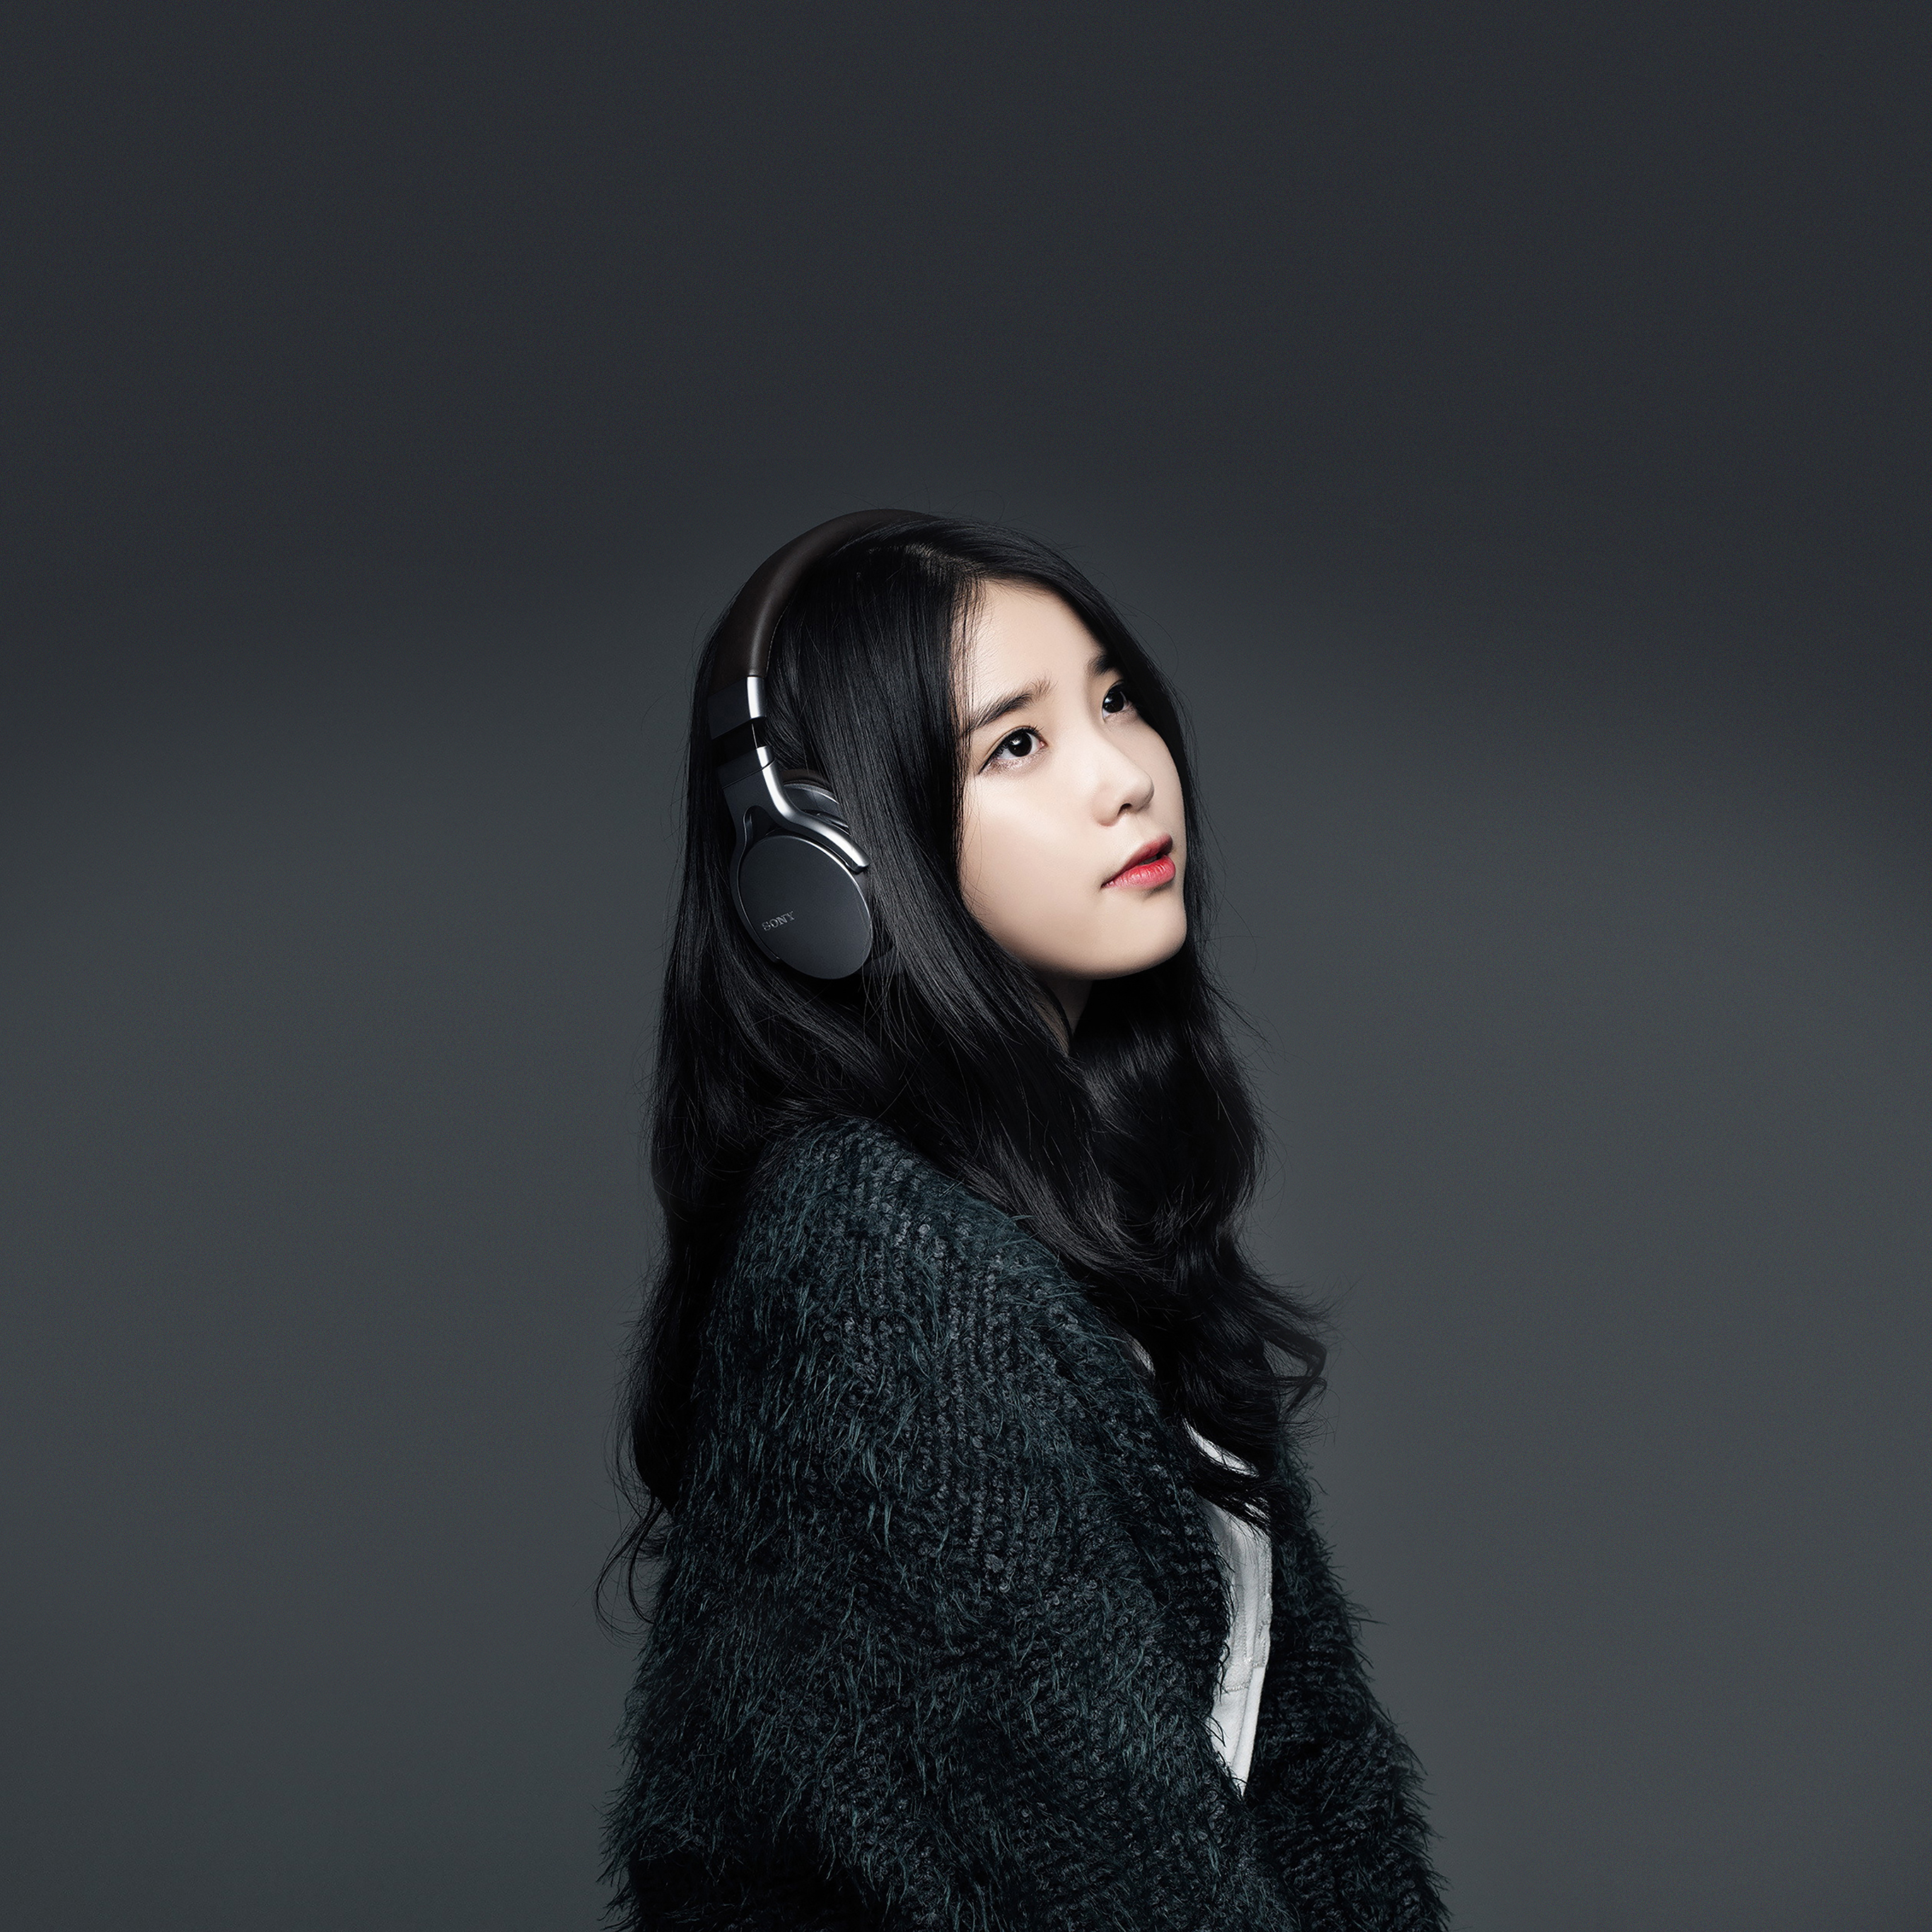 Papersco Android Wallpaper Hc01 Iu Kpop Star Music Sony